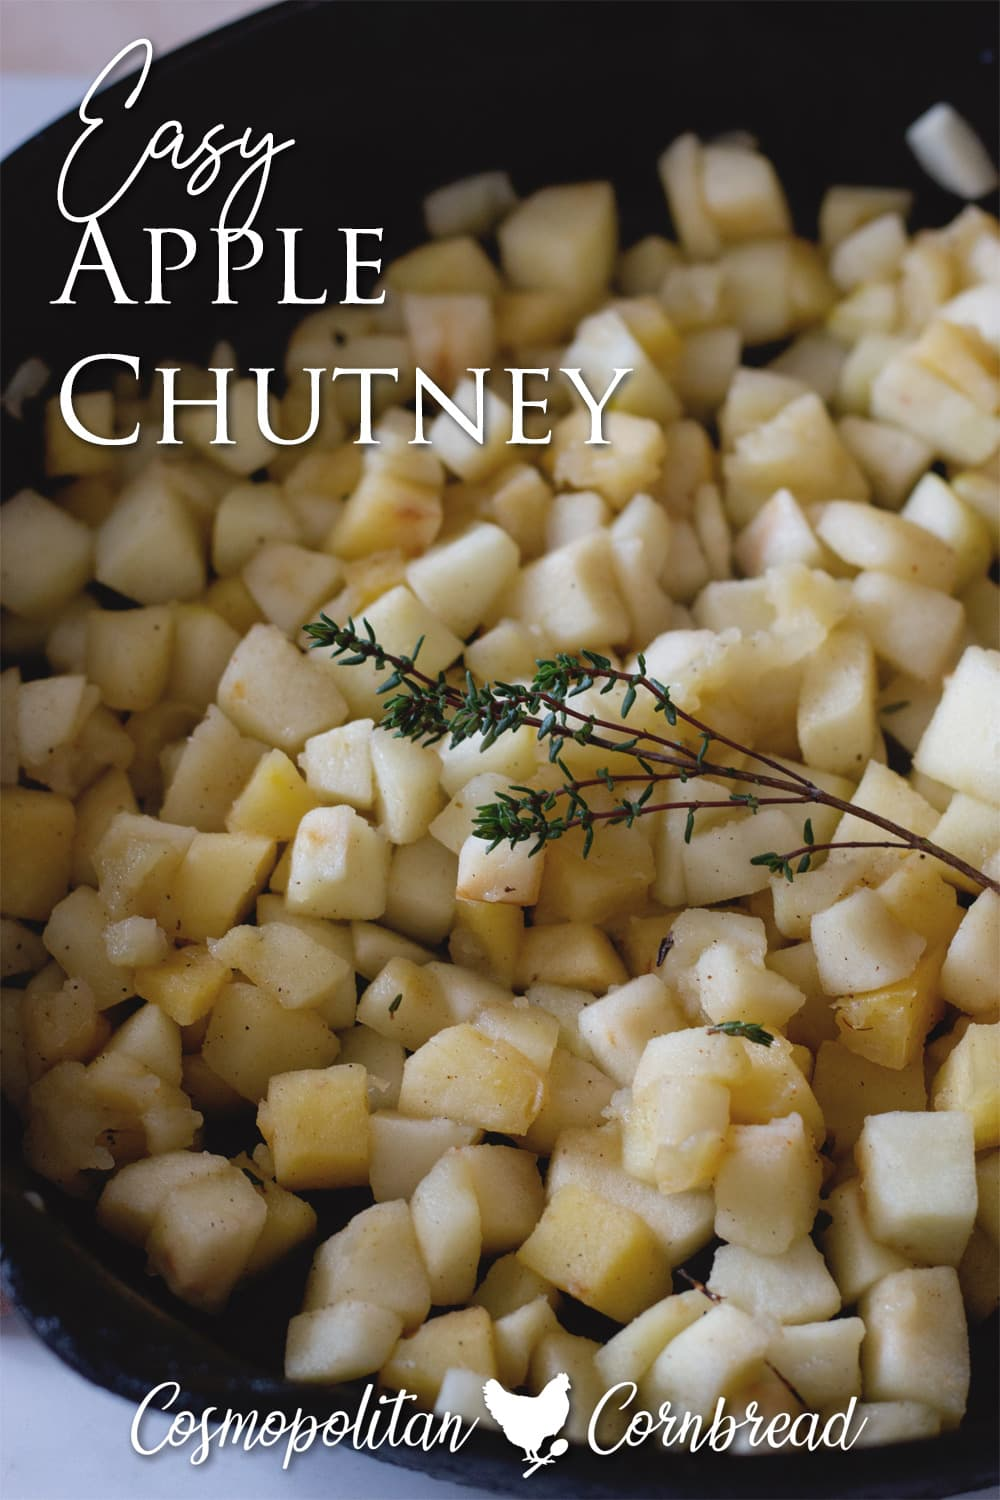 How to Make Quick Apple Chutney - Apple Chutney is a wonderful, spiced apple topping that is perfect for serving with or on meats.